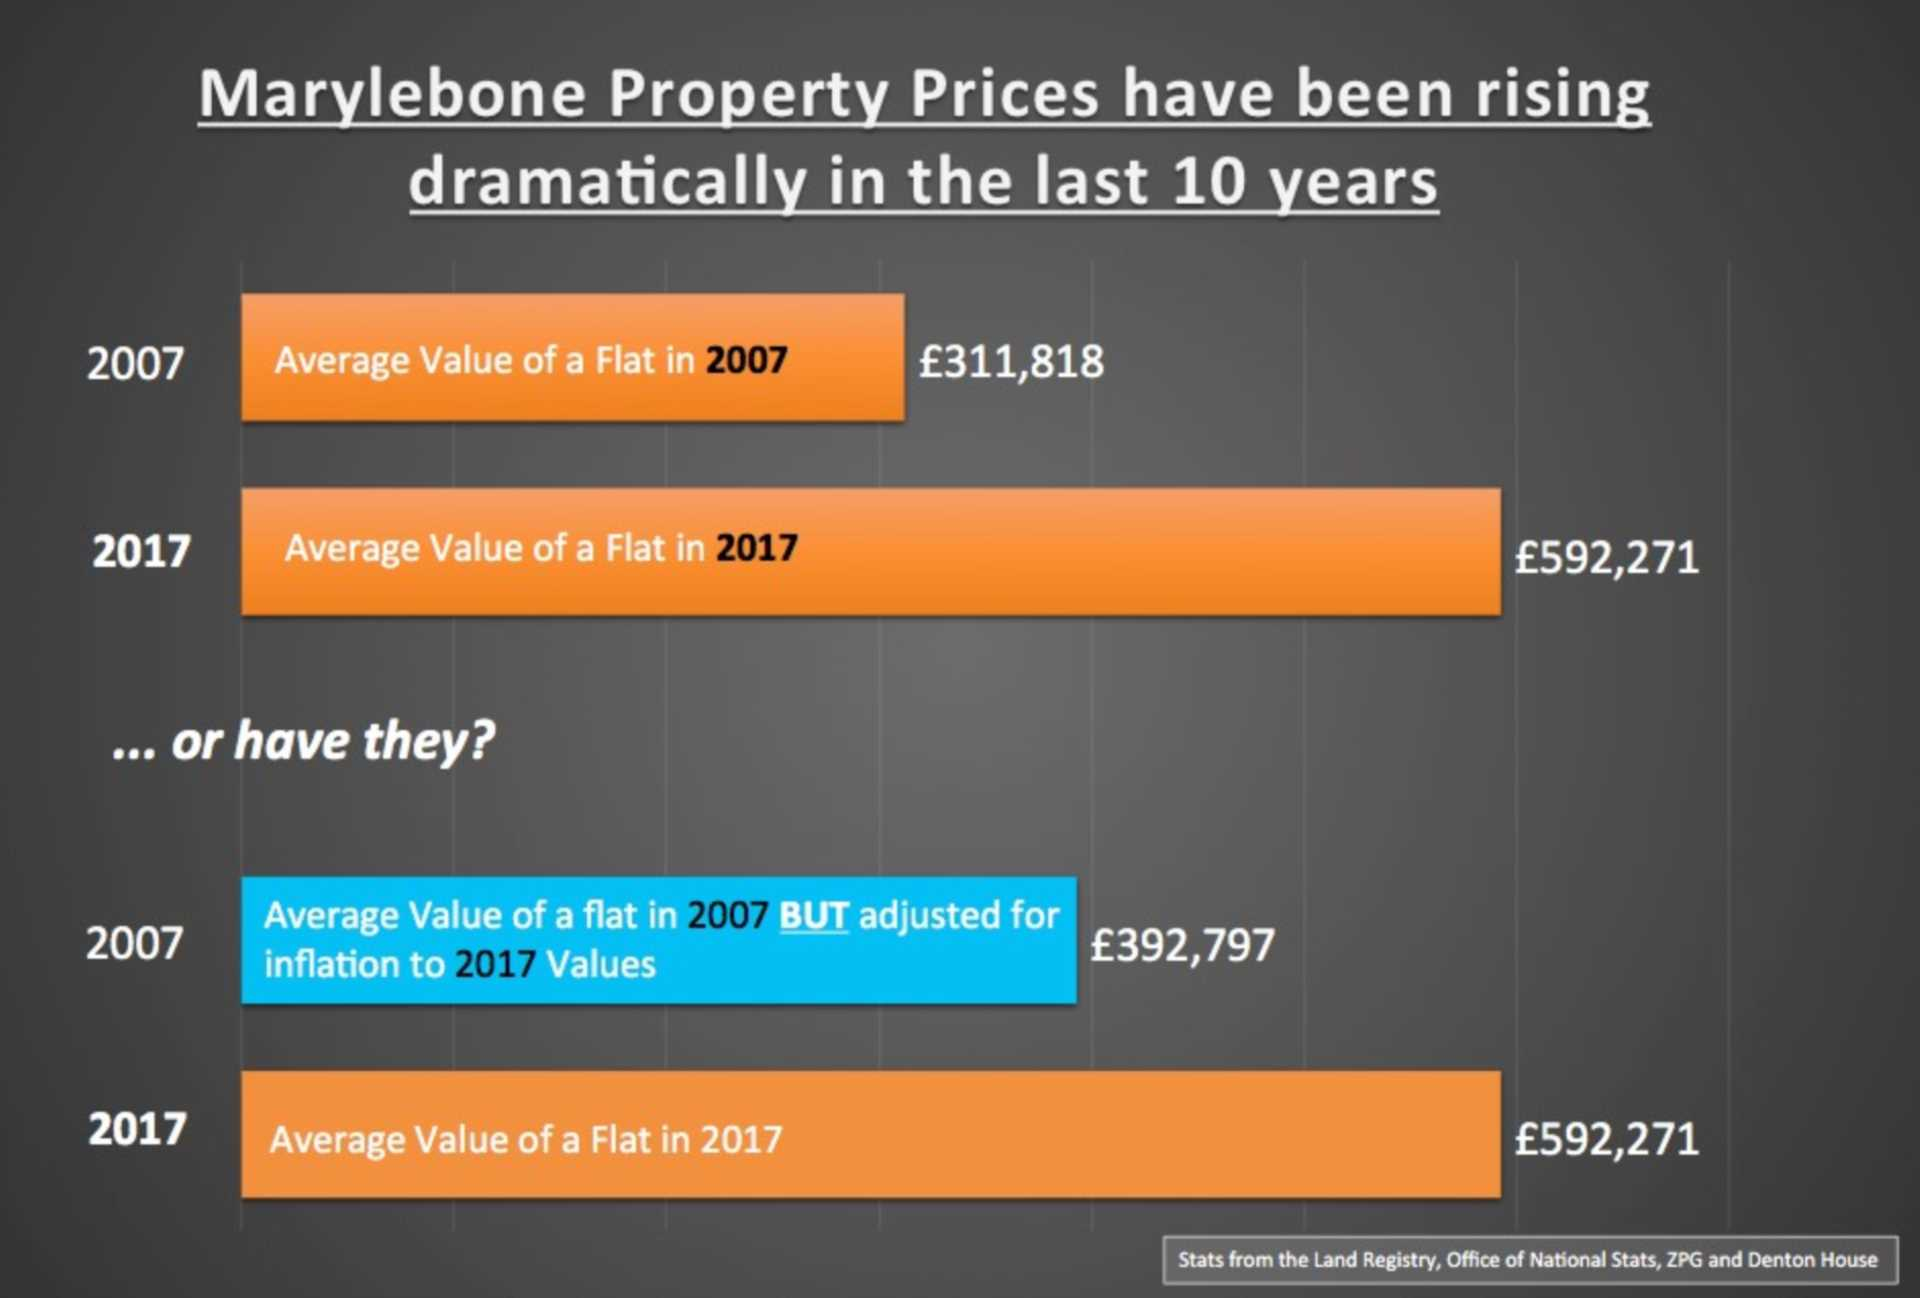 Marylebone Apartments are only 21.4% more expensive in REAL terms than 10 years ago